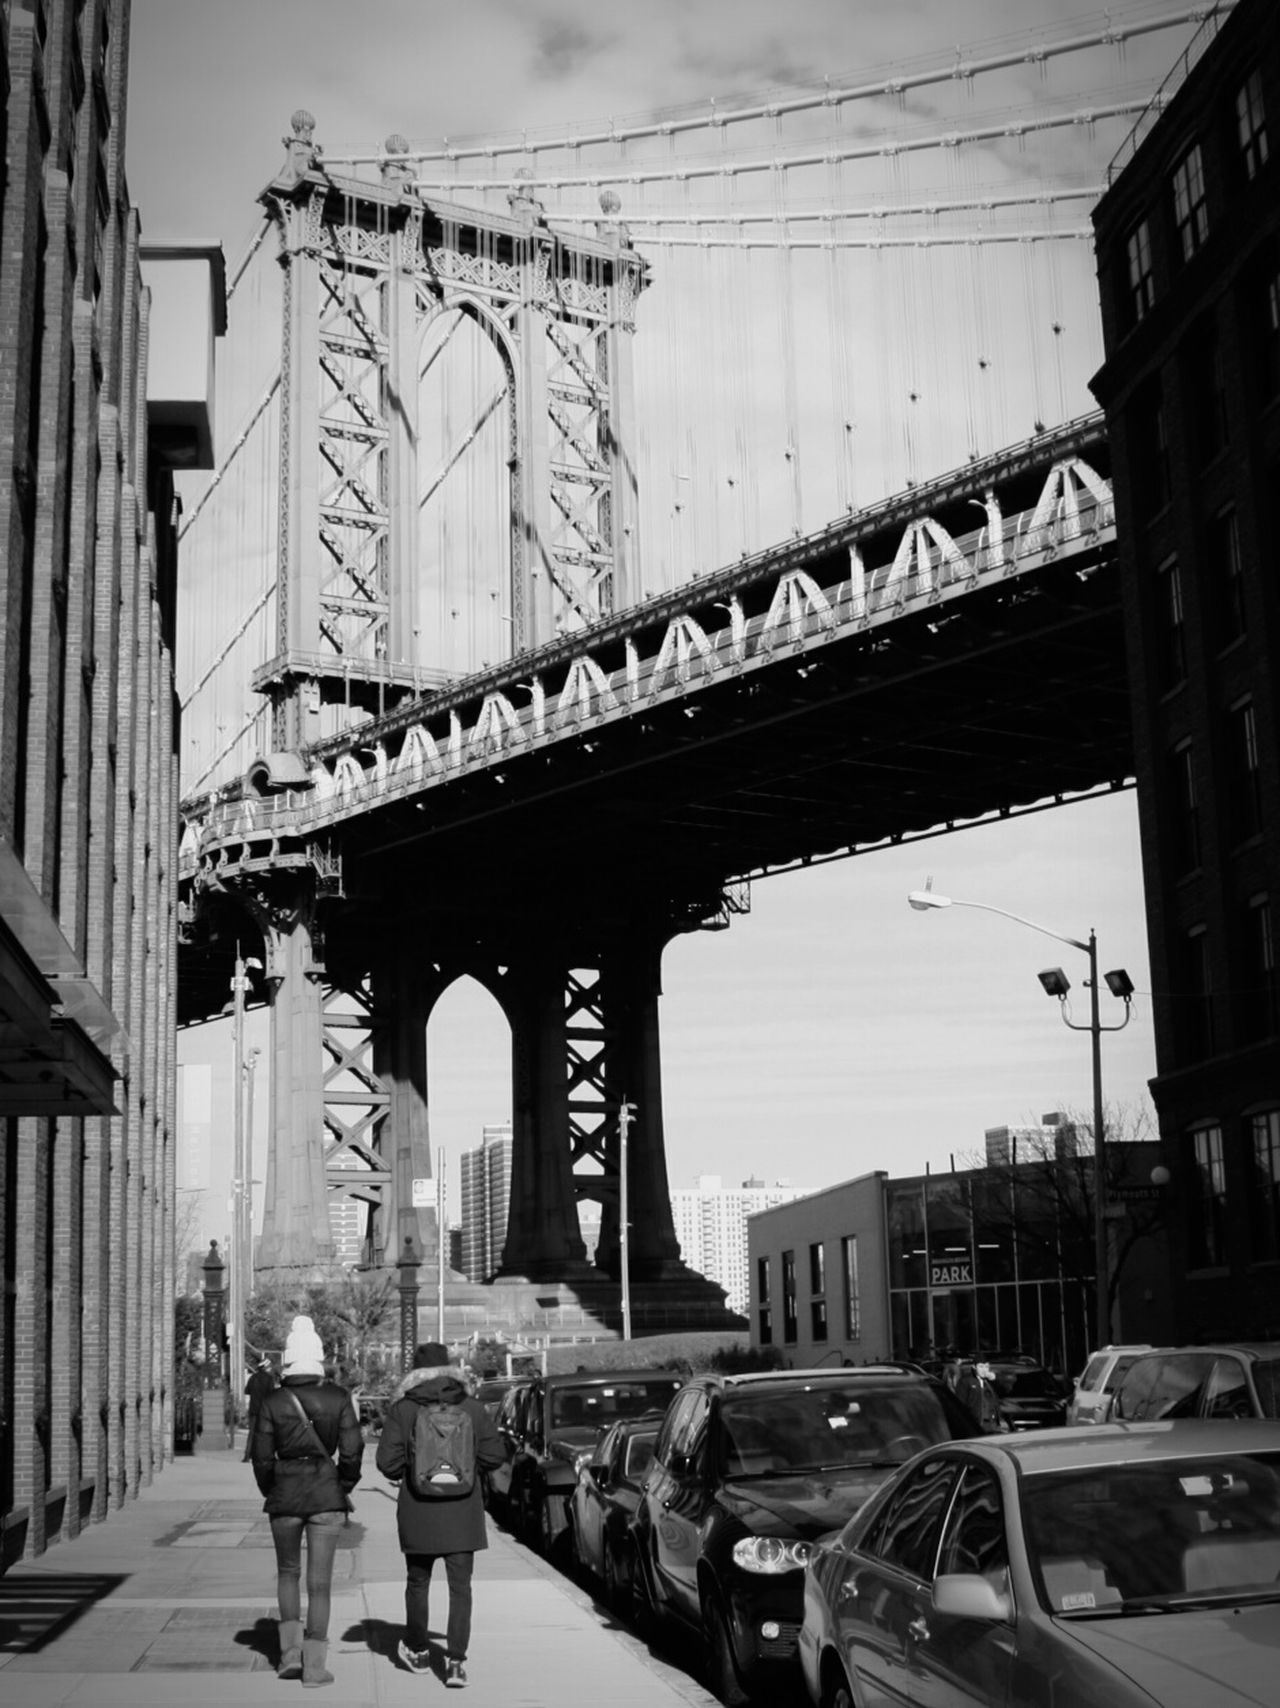 New York City DUMBO, Brooklyn Brooklyn City Life Bridgesaroundtheworld Streetphotography Manhattan Bridge Blackandwhite City Street City Sesentirminuscule TheFollowing Battle Of The Cities